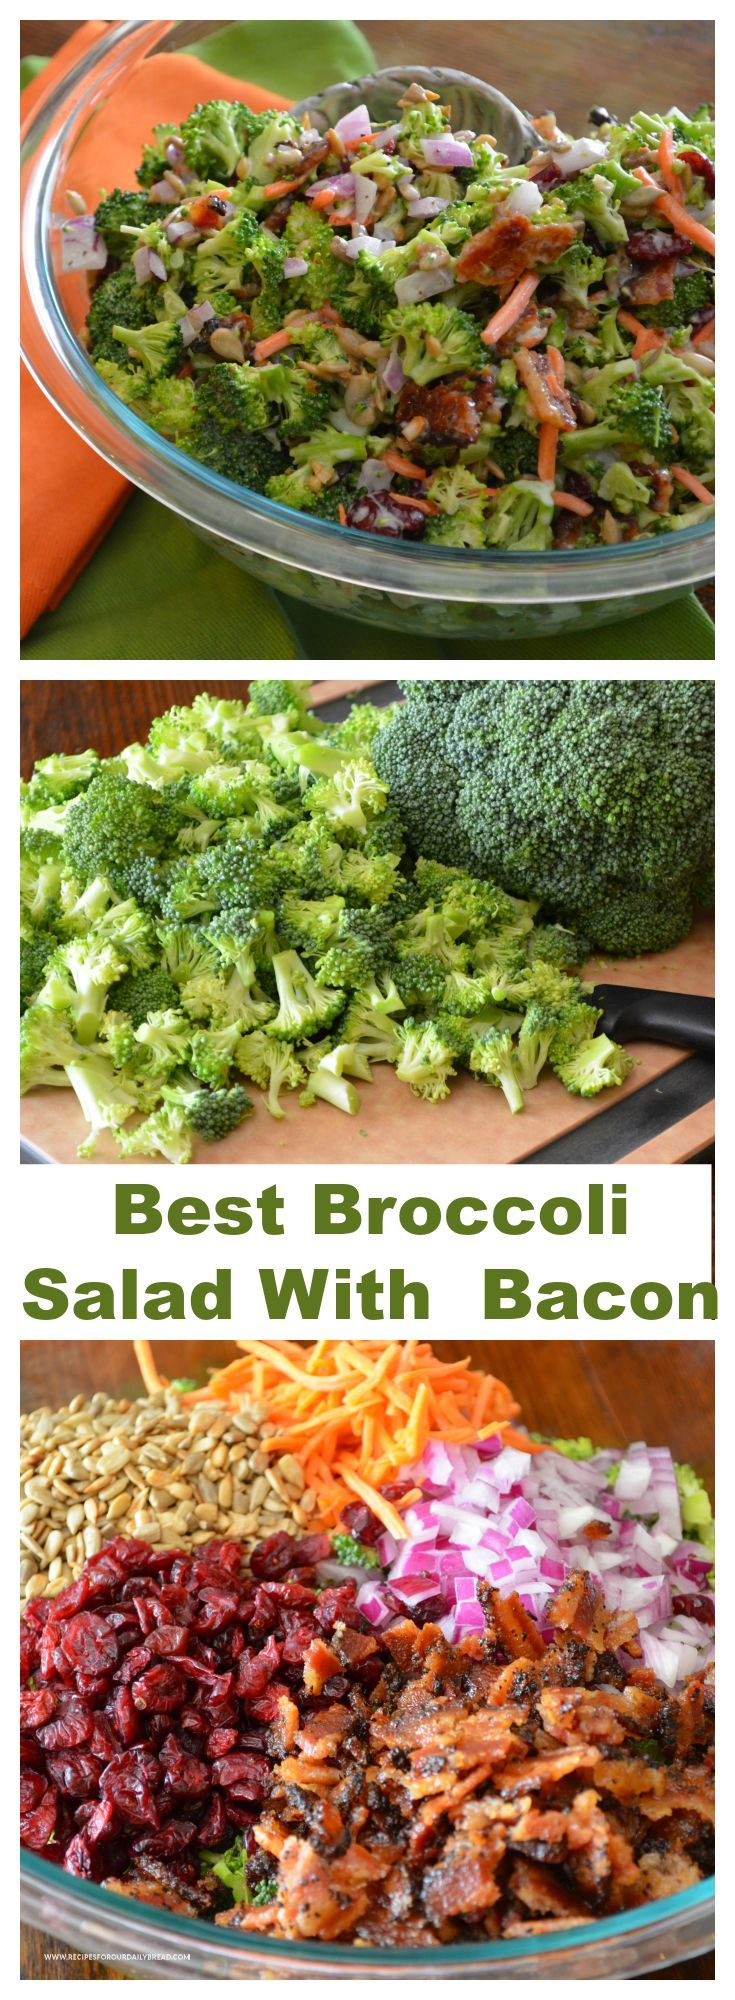 Broccoli Salad with Bacon on MyRecipeMagic.com